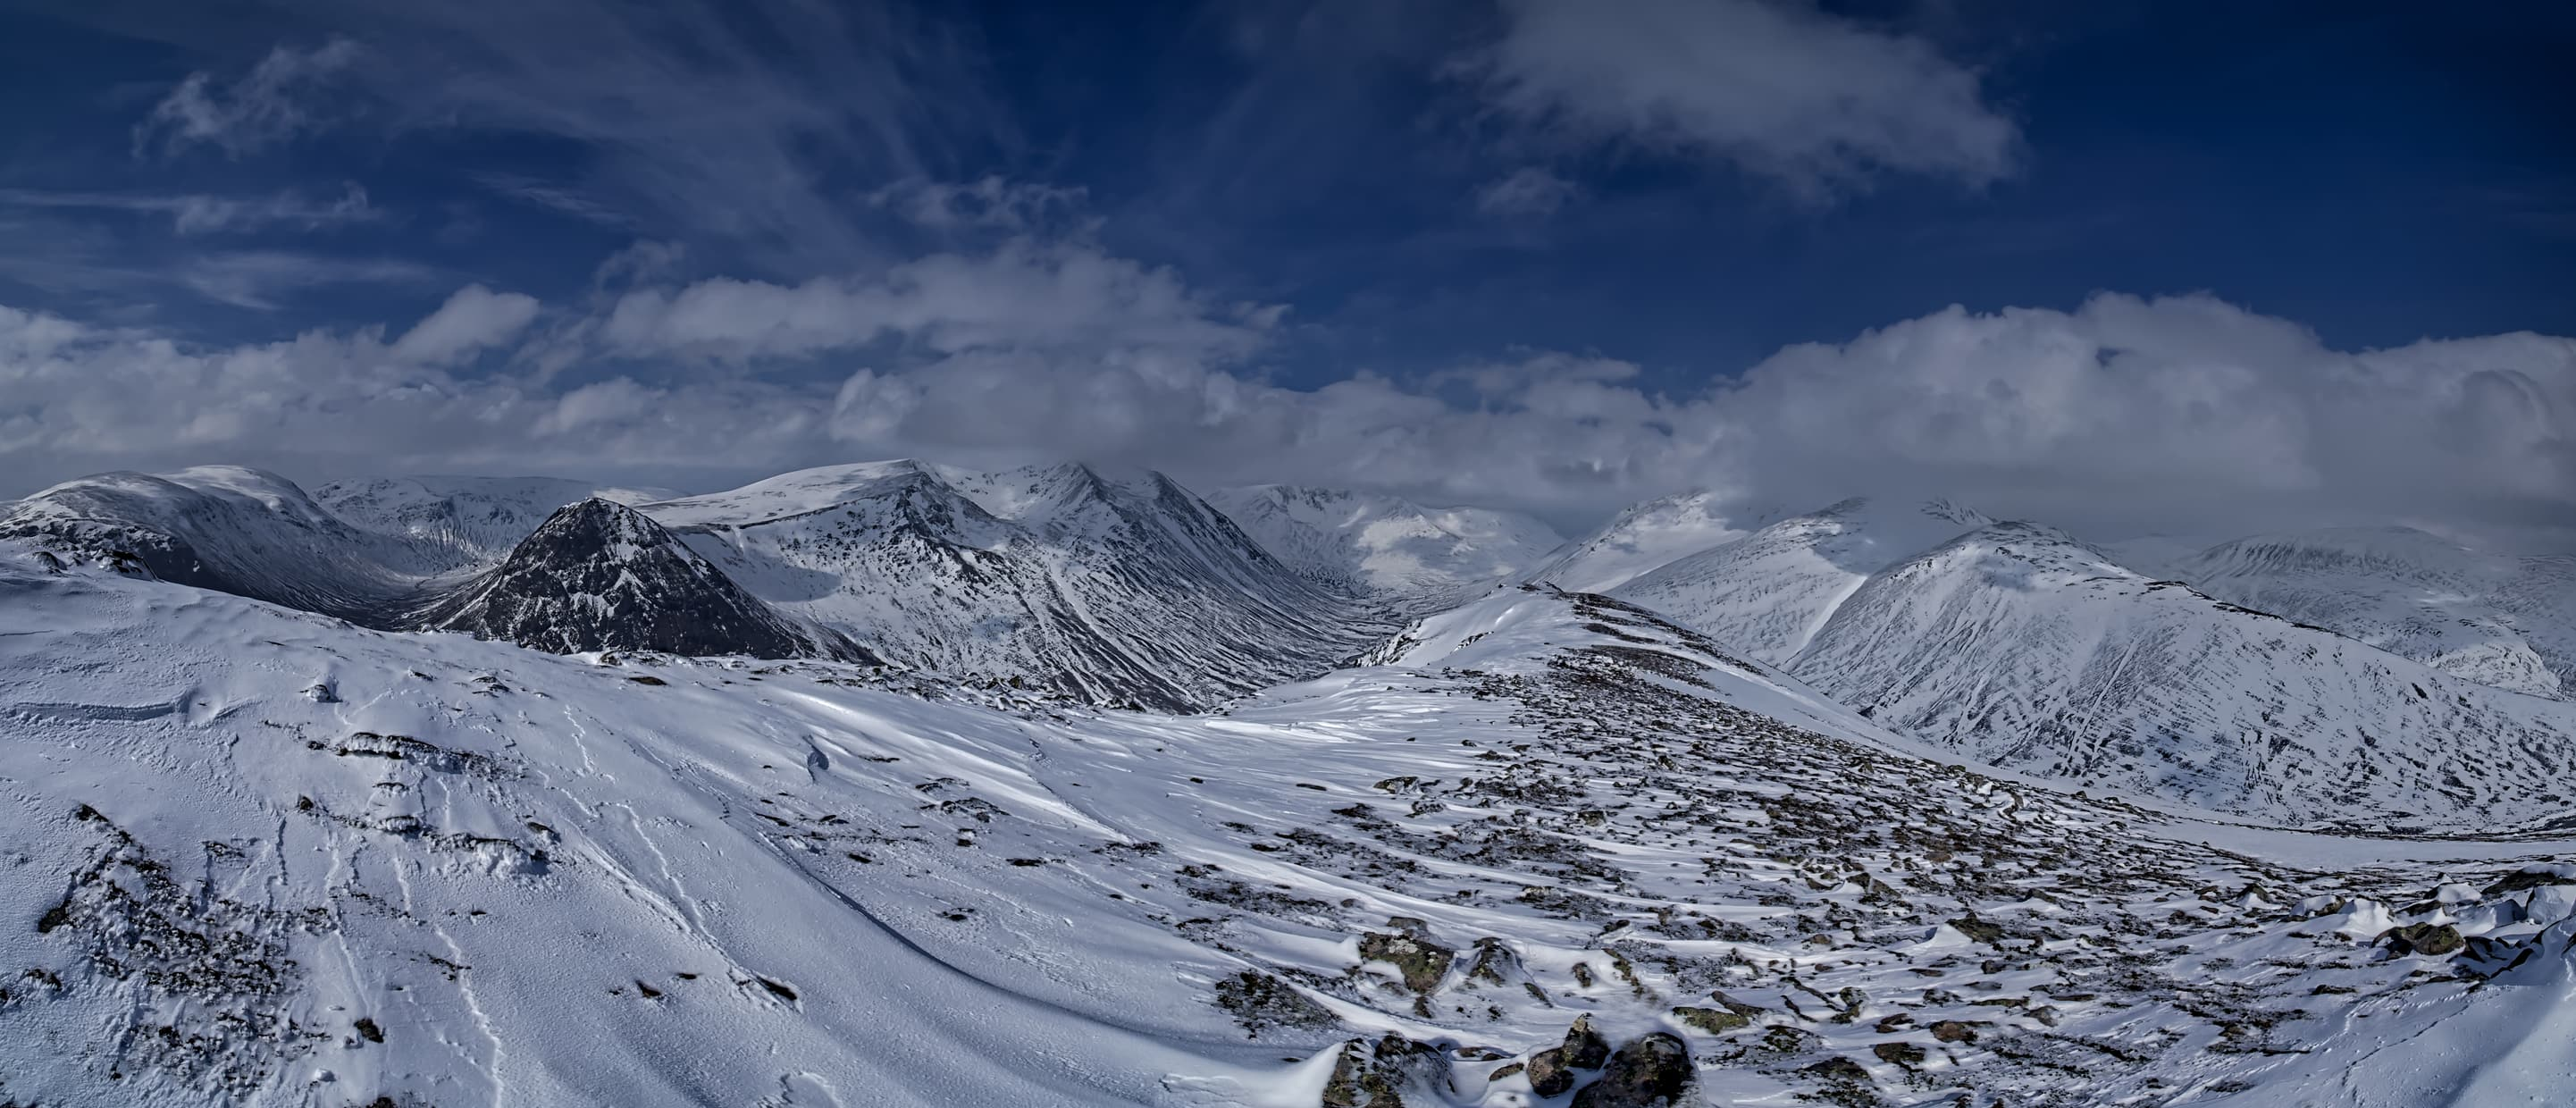 Lairig Ghru panorama from the summit of Carn a'Mhaim. The Cairngorms, Scotland